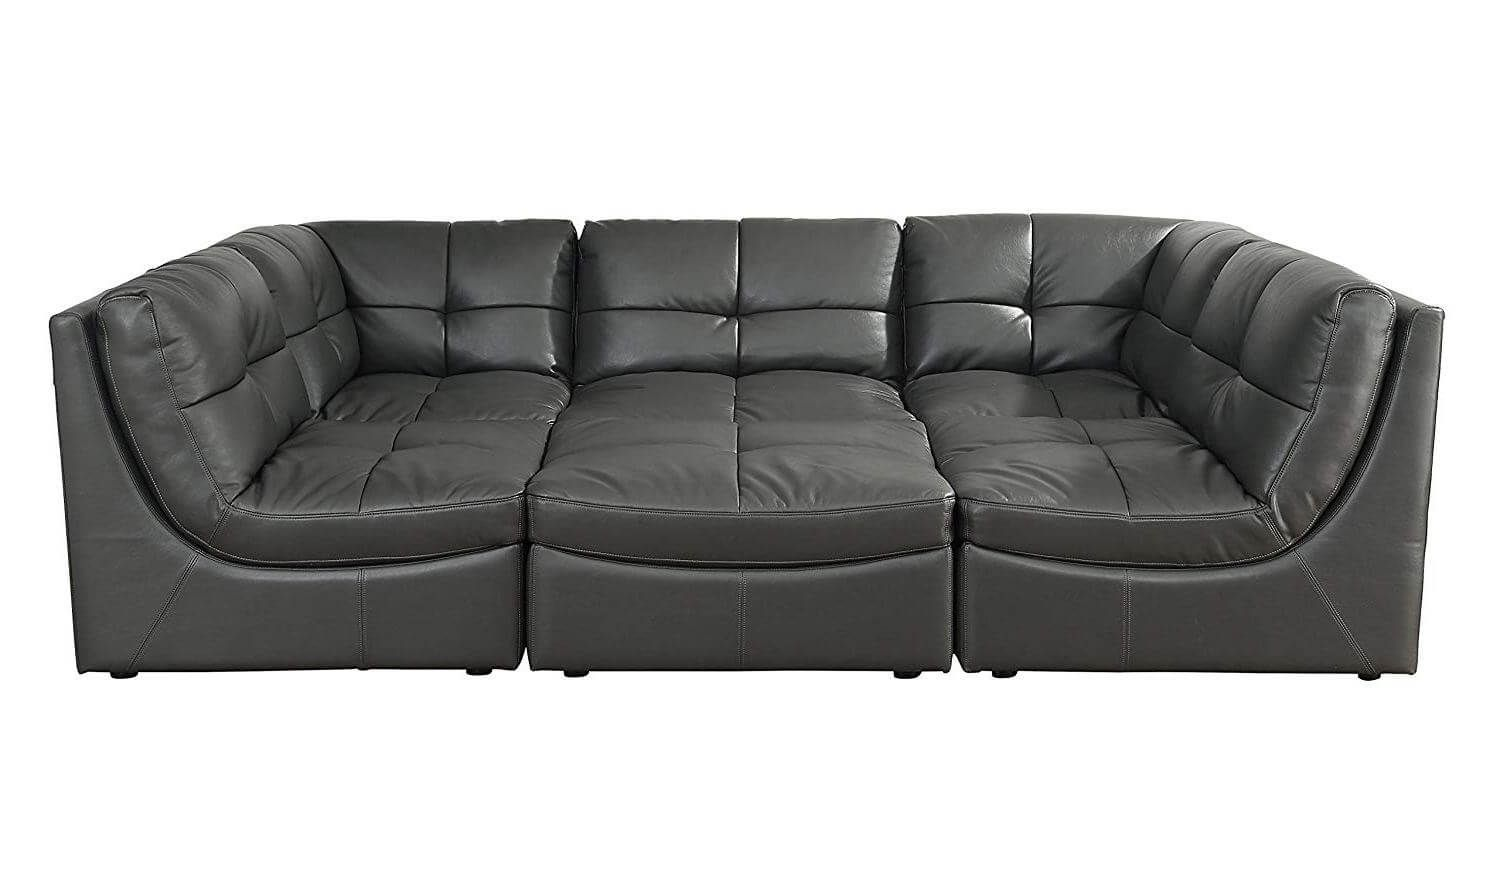 Embrace Your Home With Best Leather Sofa Brands Best Leather